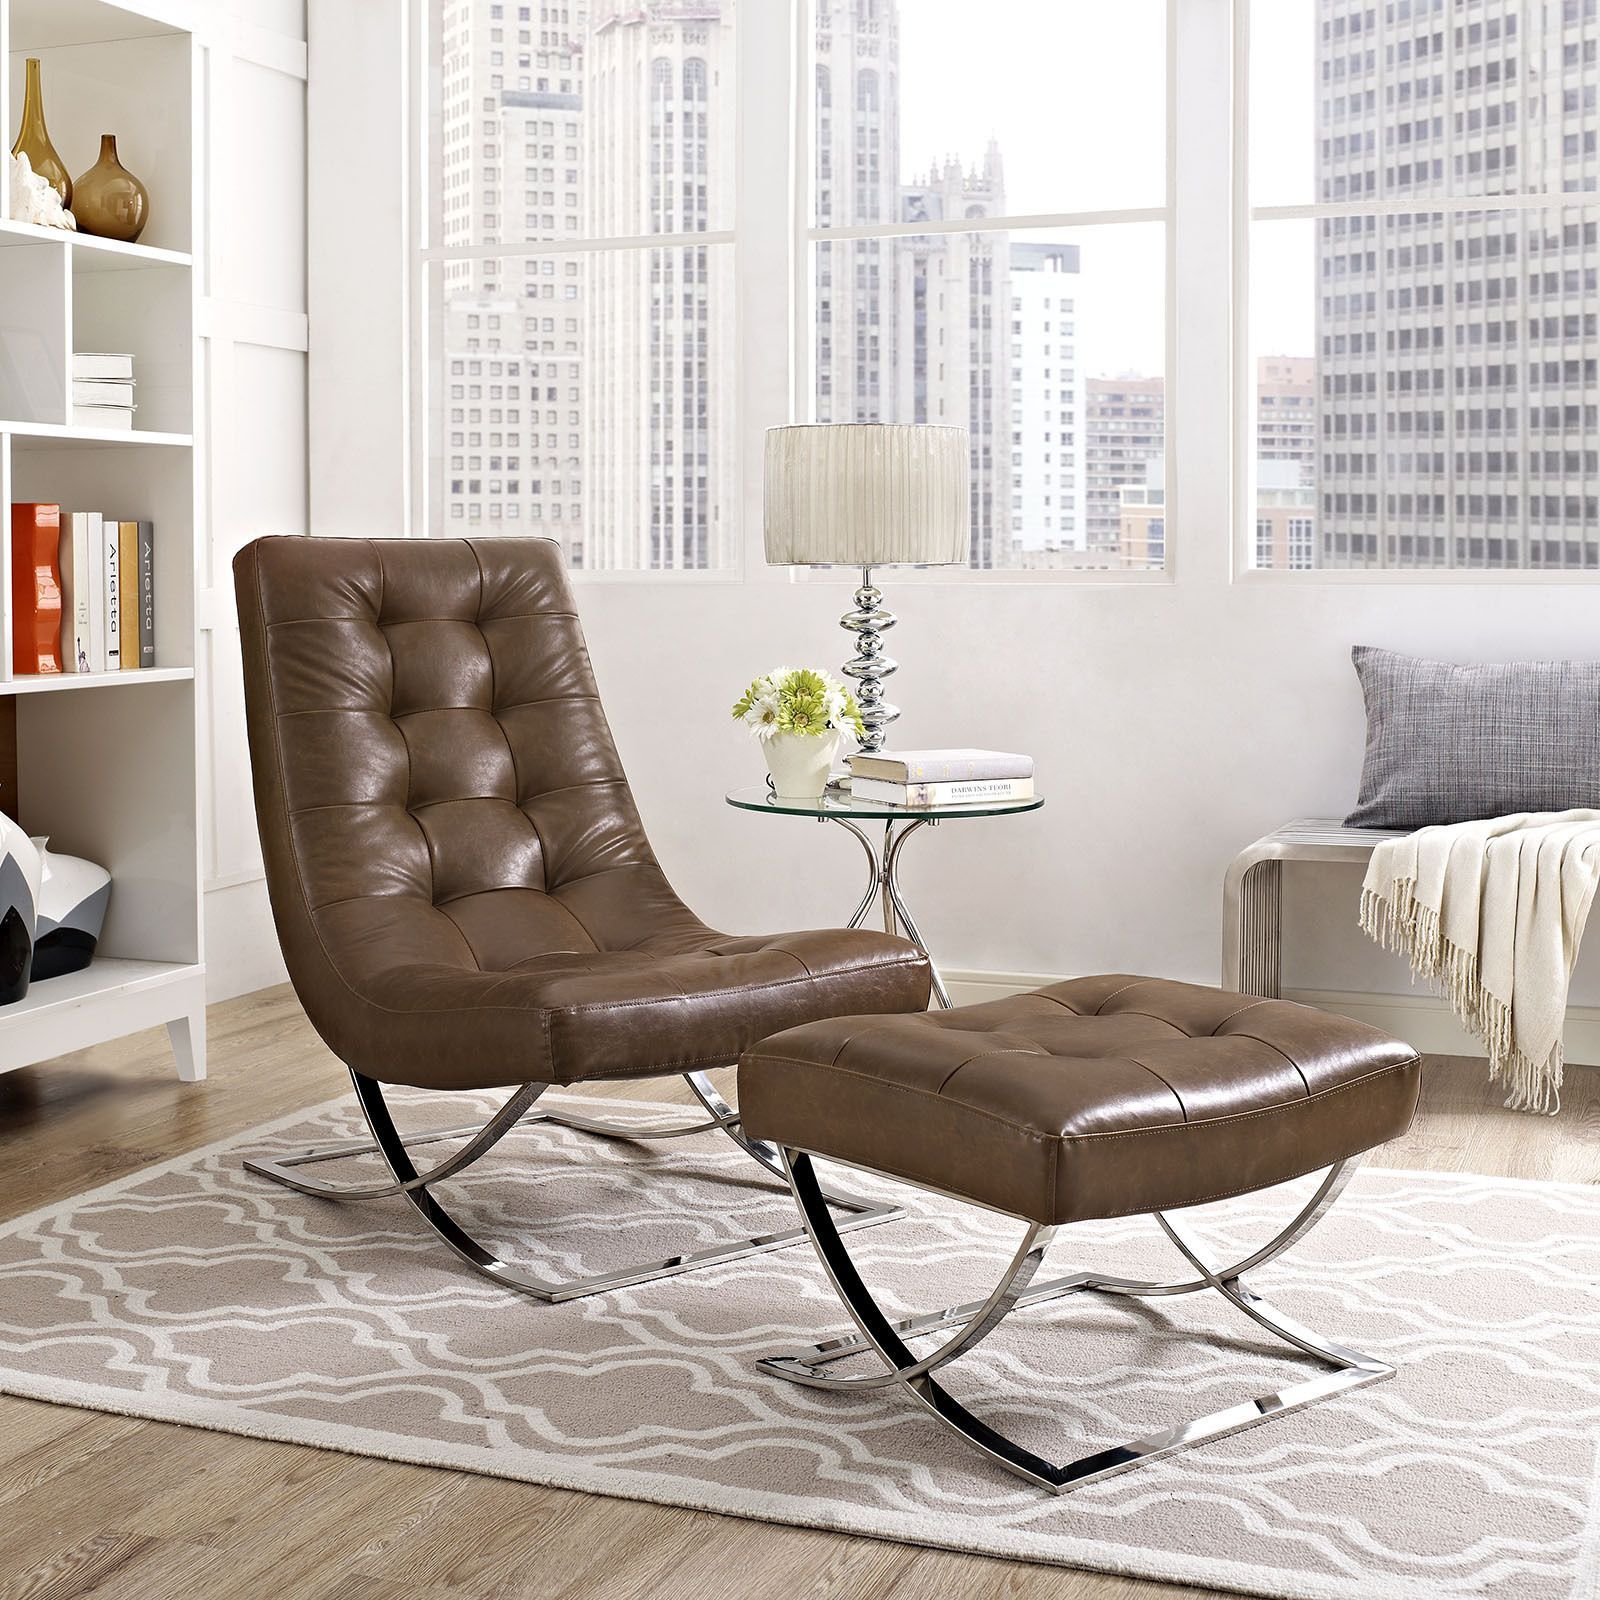 ottoman for living room%0A Modway Slope Faux Leather Lounge Chair and Ottoman Set